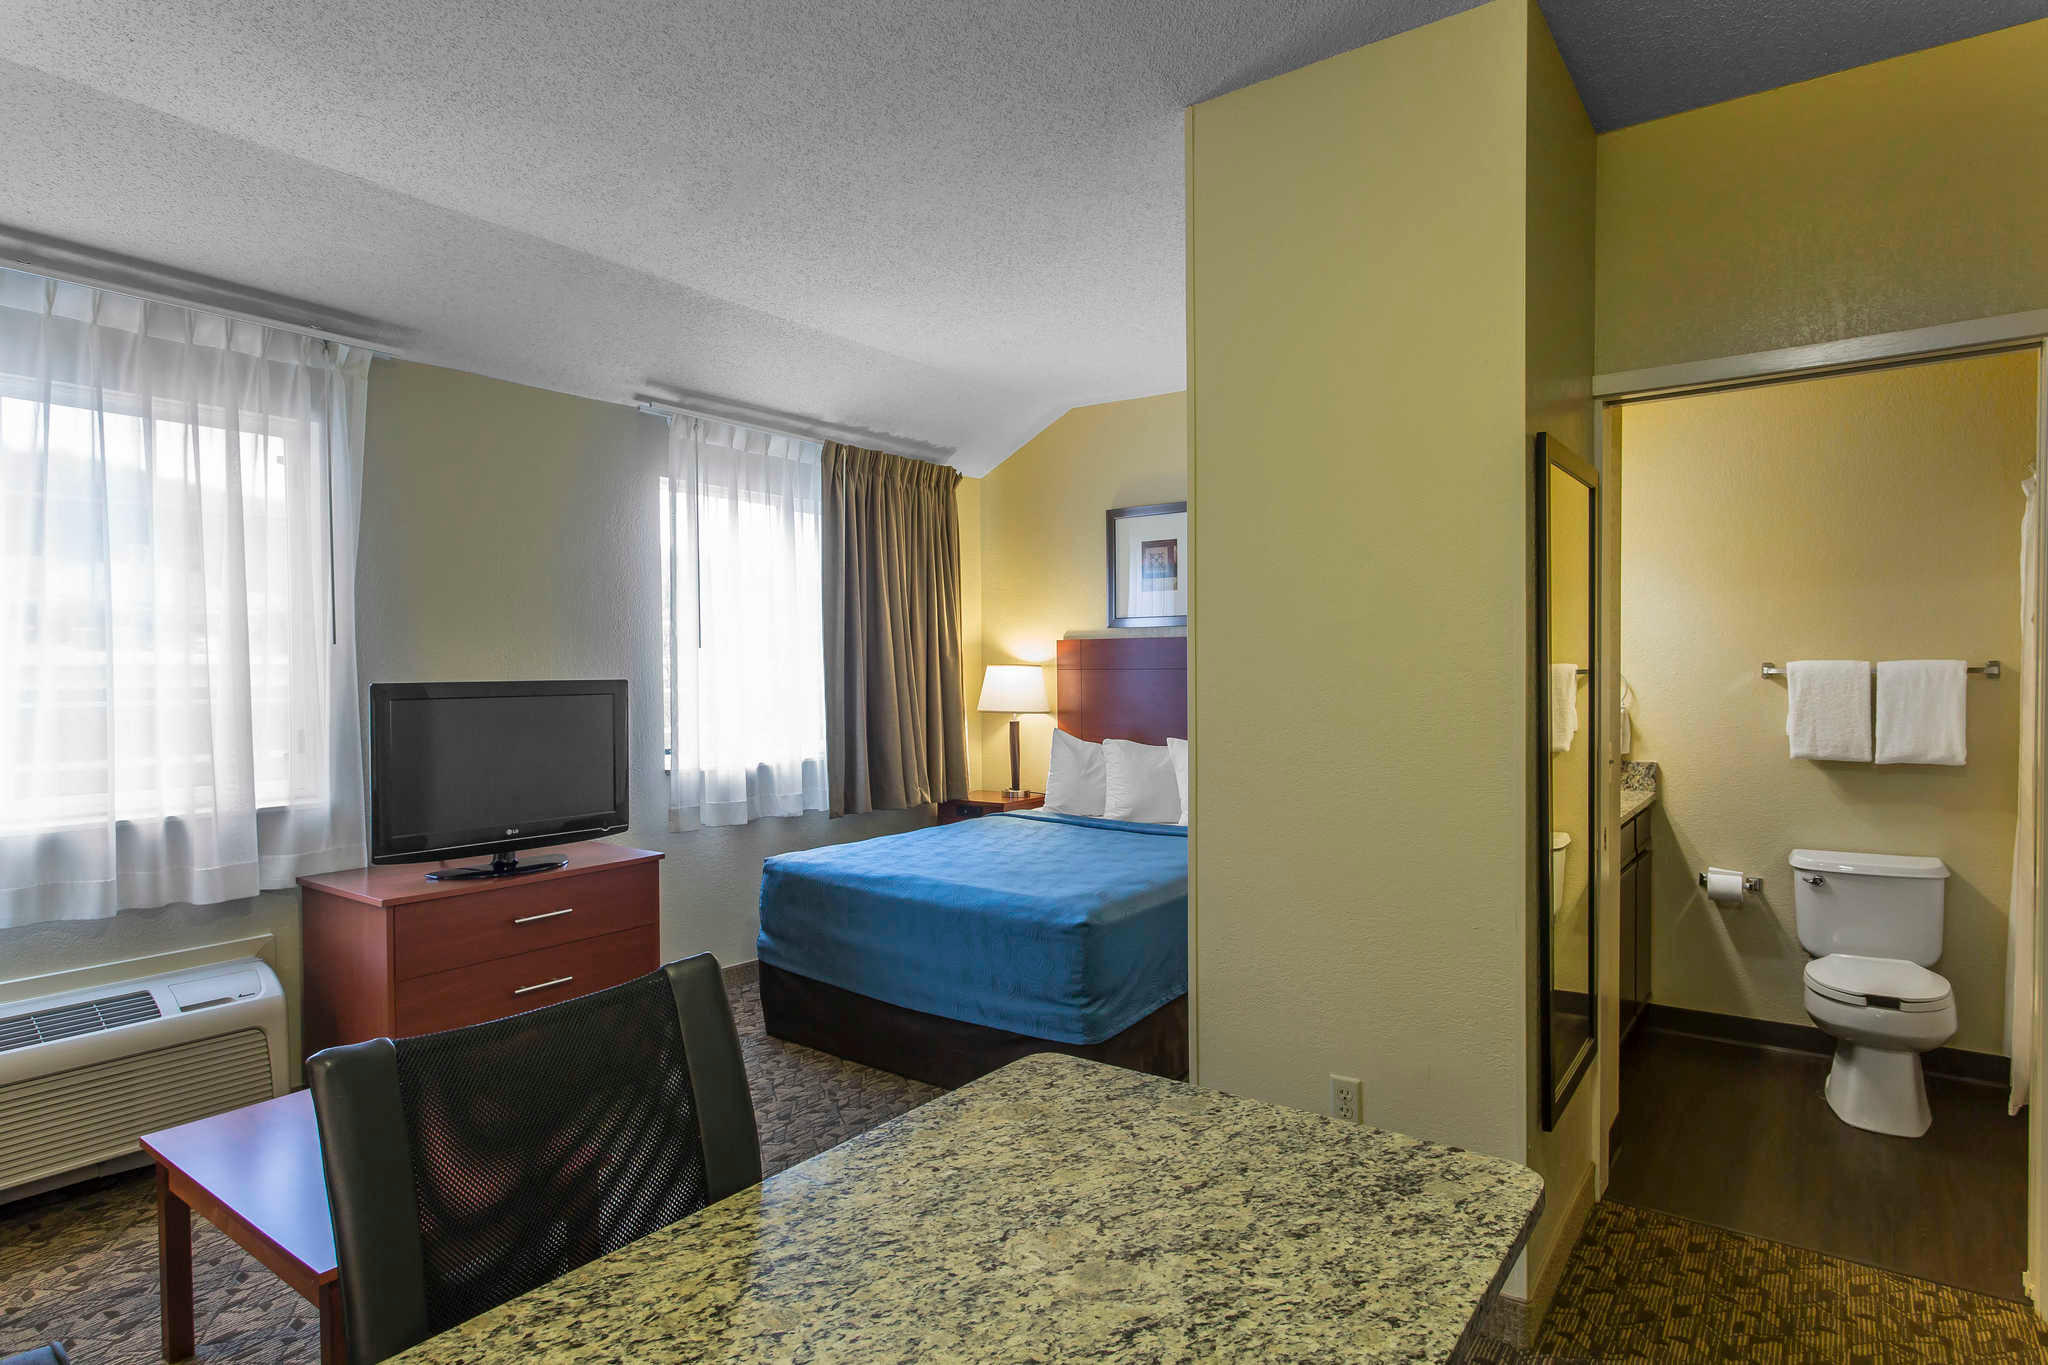 MainStay Suites image 11